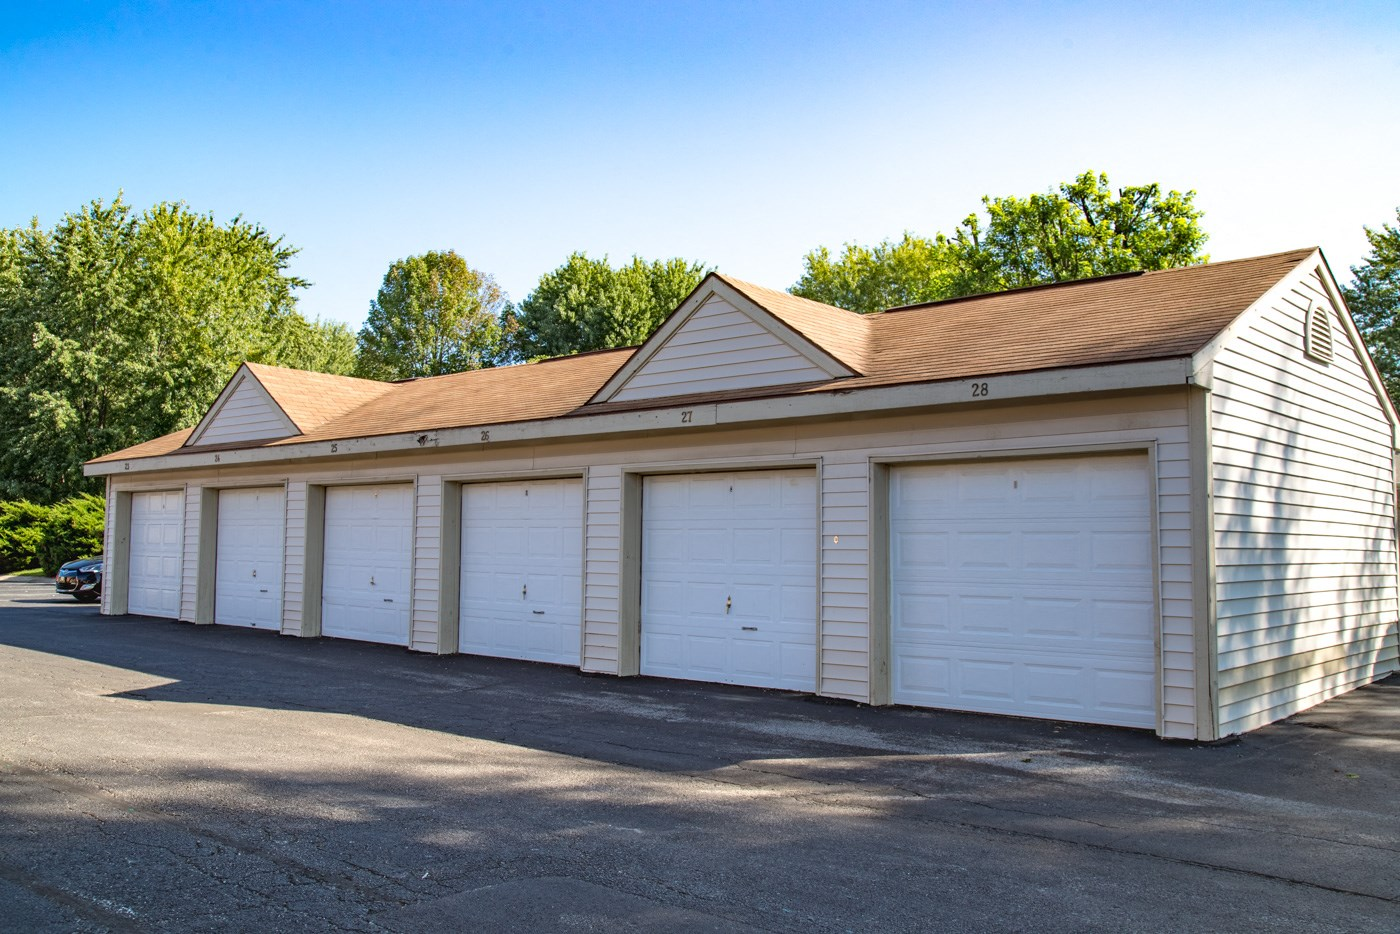 private Garages in community